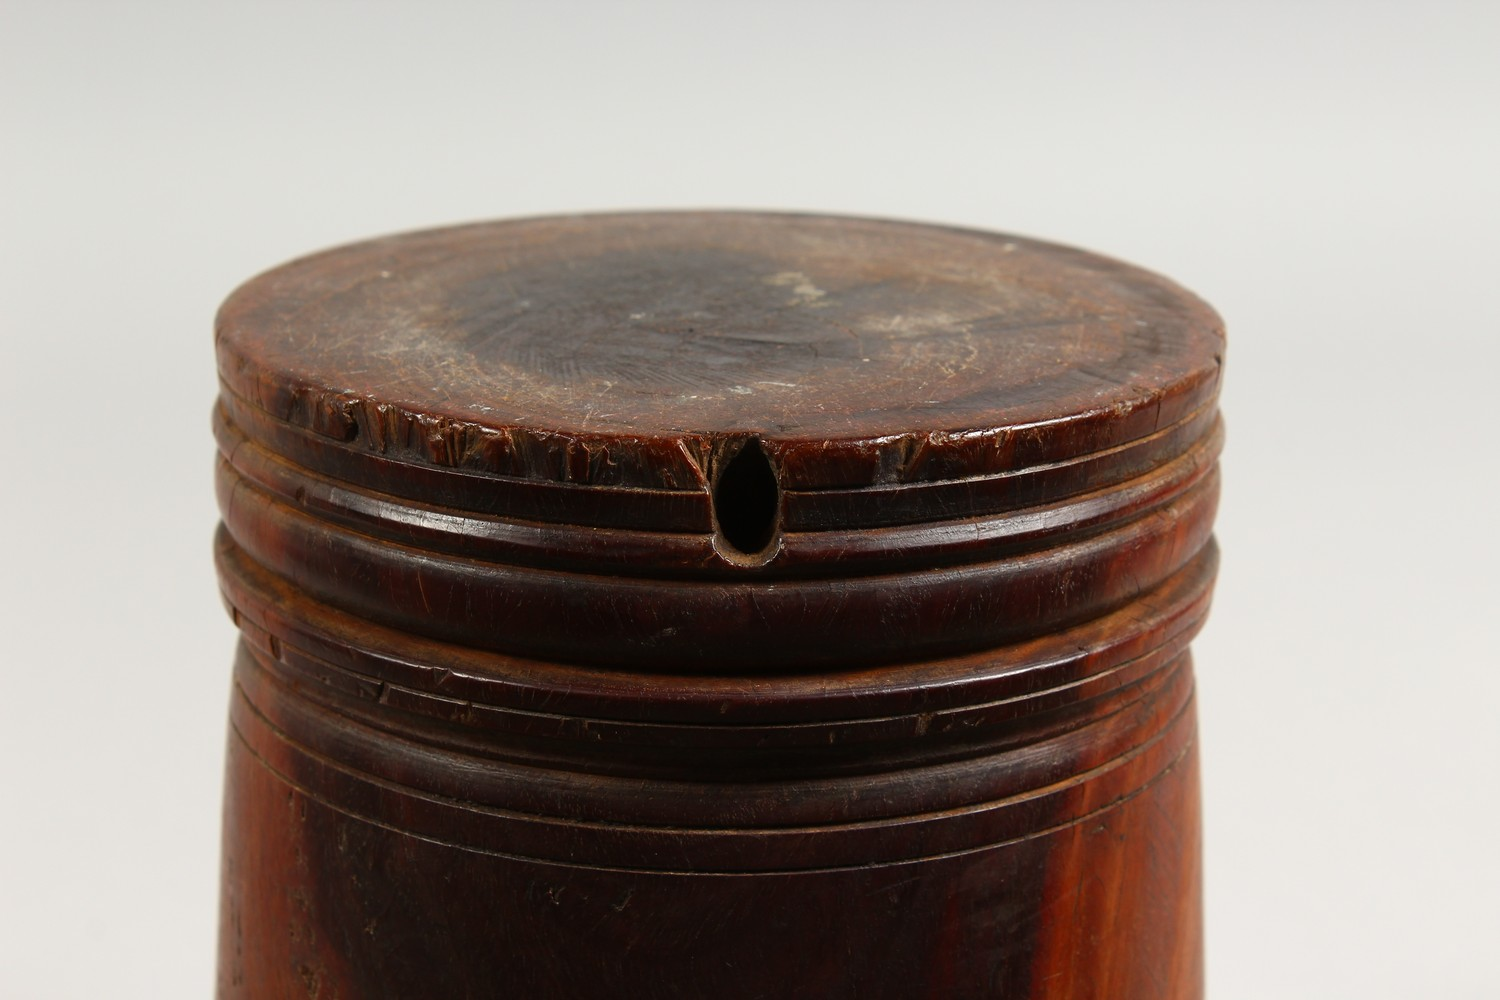 Lot 1510 - AN 18TH/19TH CENTURY LIGNUM VITAE MORTAR, with later pestle. Mortar: 7.5ins high.